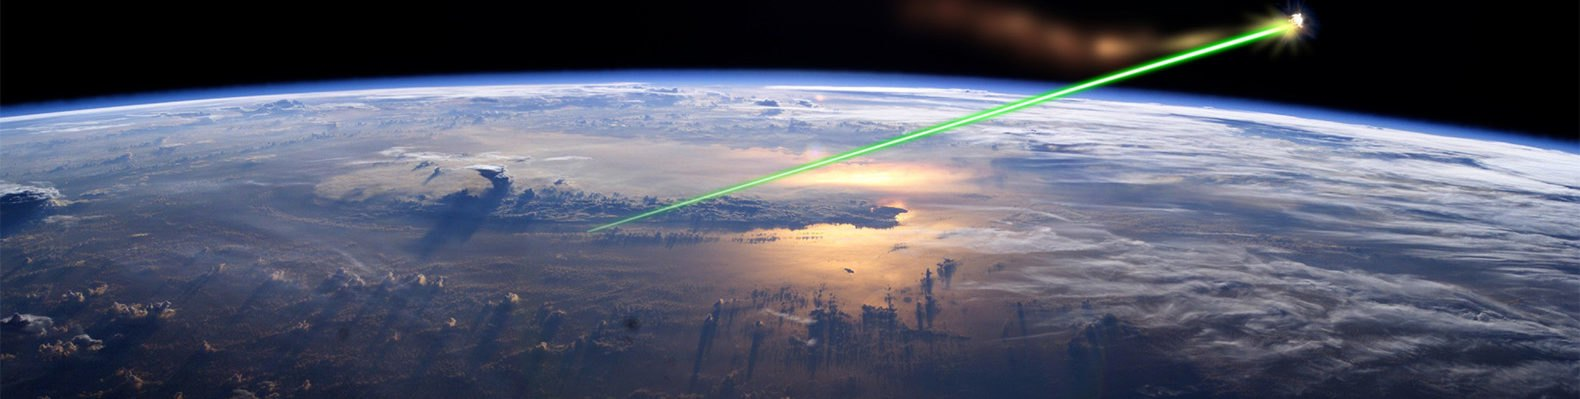 Space, laser broom, space debris, laser, lasers, space junk